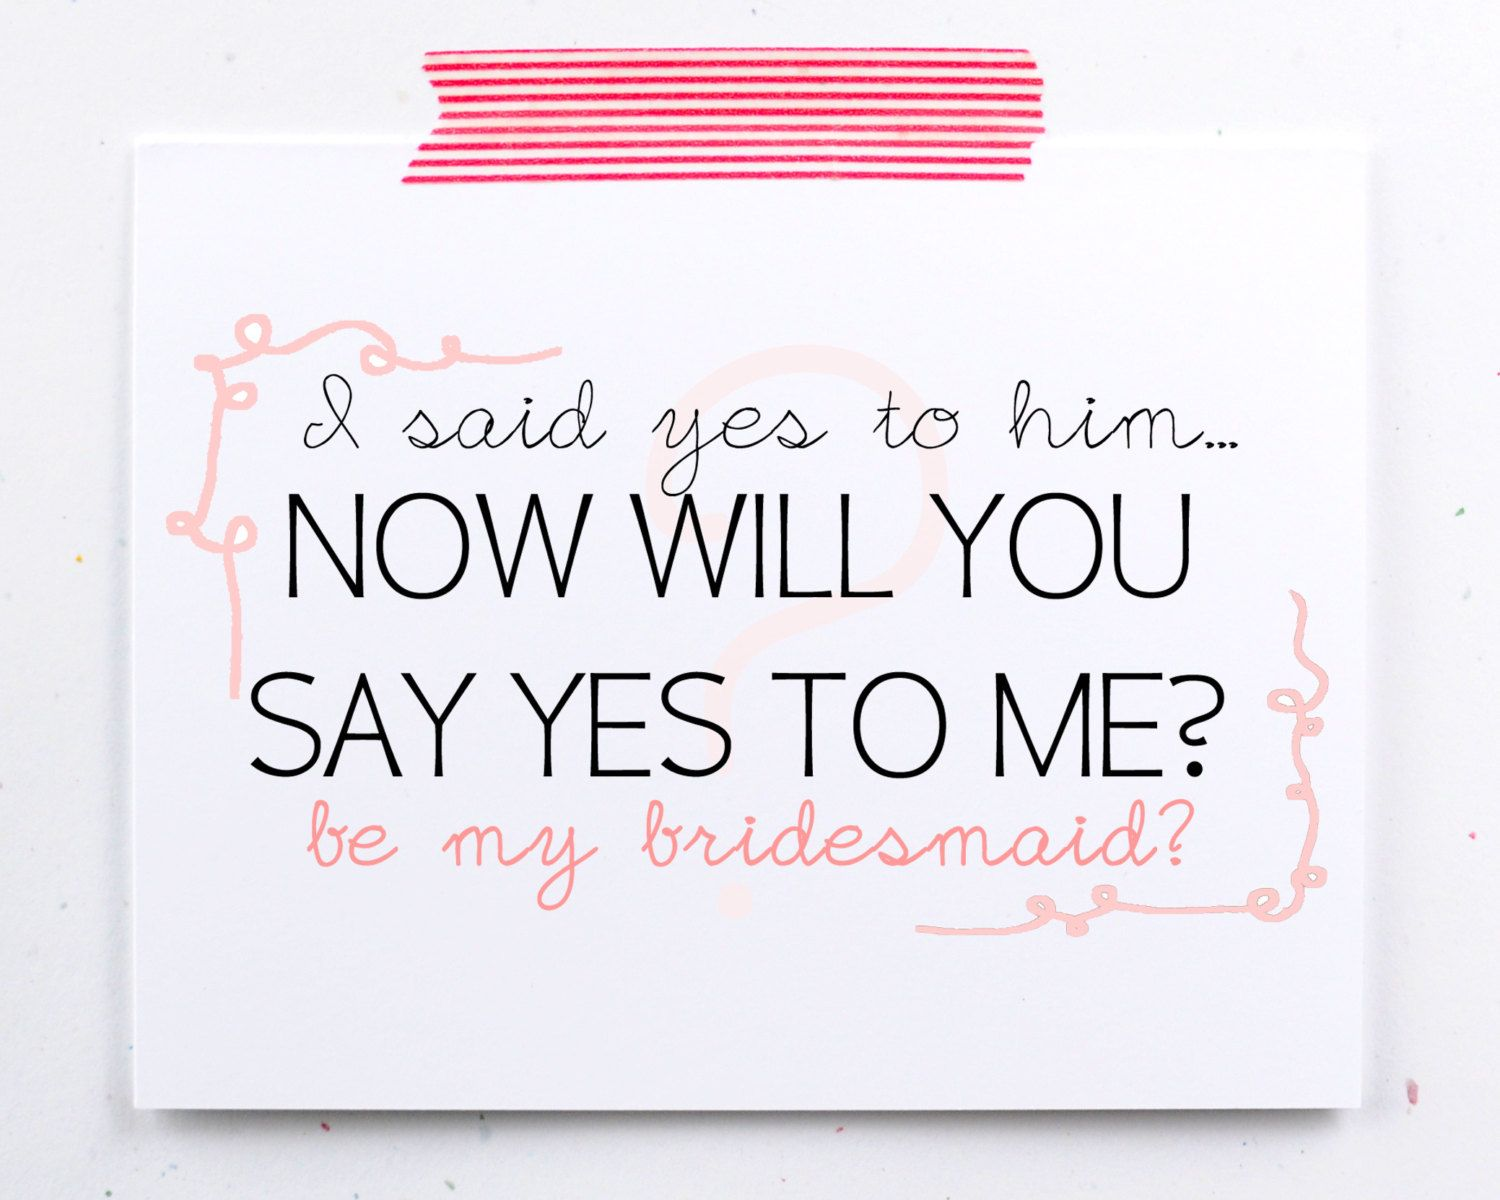 Asking Bridesmaid Quotes - Google Search